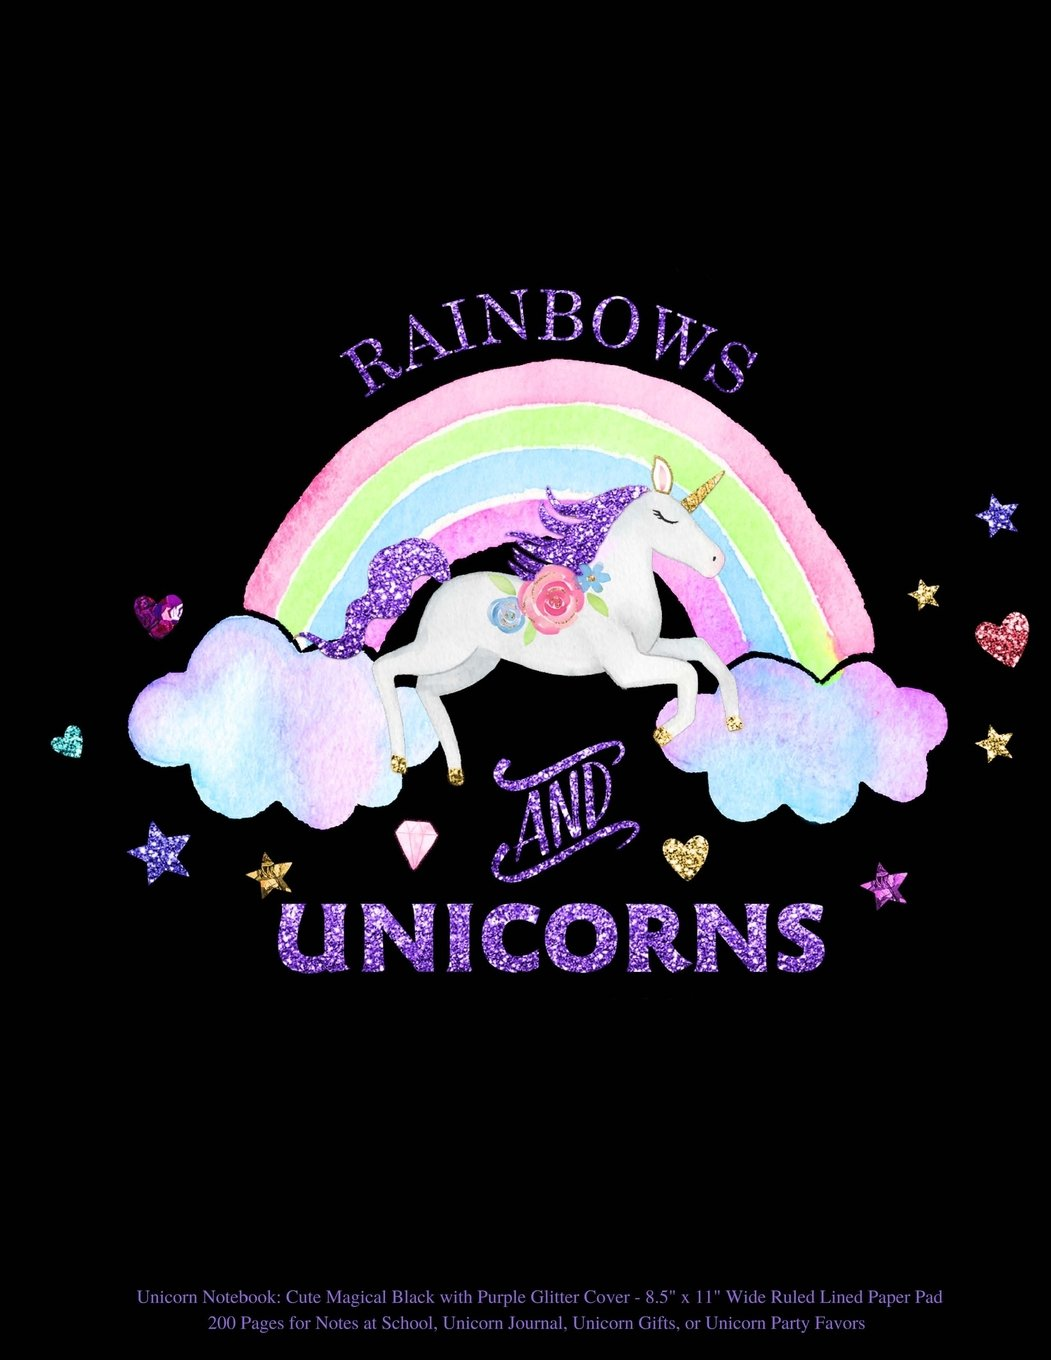 """Unicorn Notebook: Rainbows and Unicorns Cute Magical Black with Purple Glitter Cover 8.5"""" x 11"""" Wide Ruled Lined Paper Pad 200 Pages for Notes at ... Unicorn Gifts, or Unicorn Party Favors ebook"""